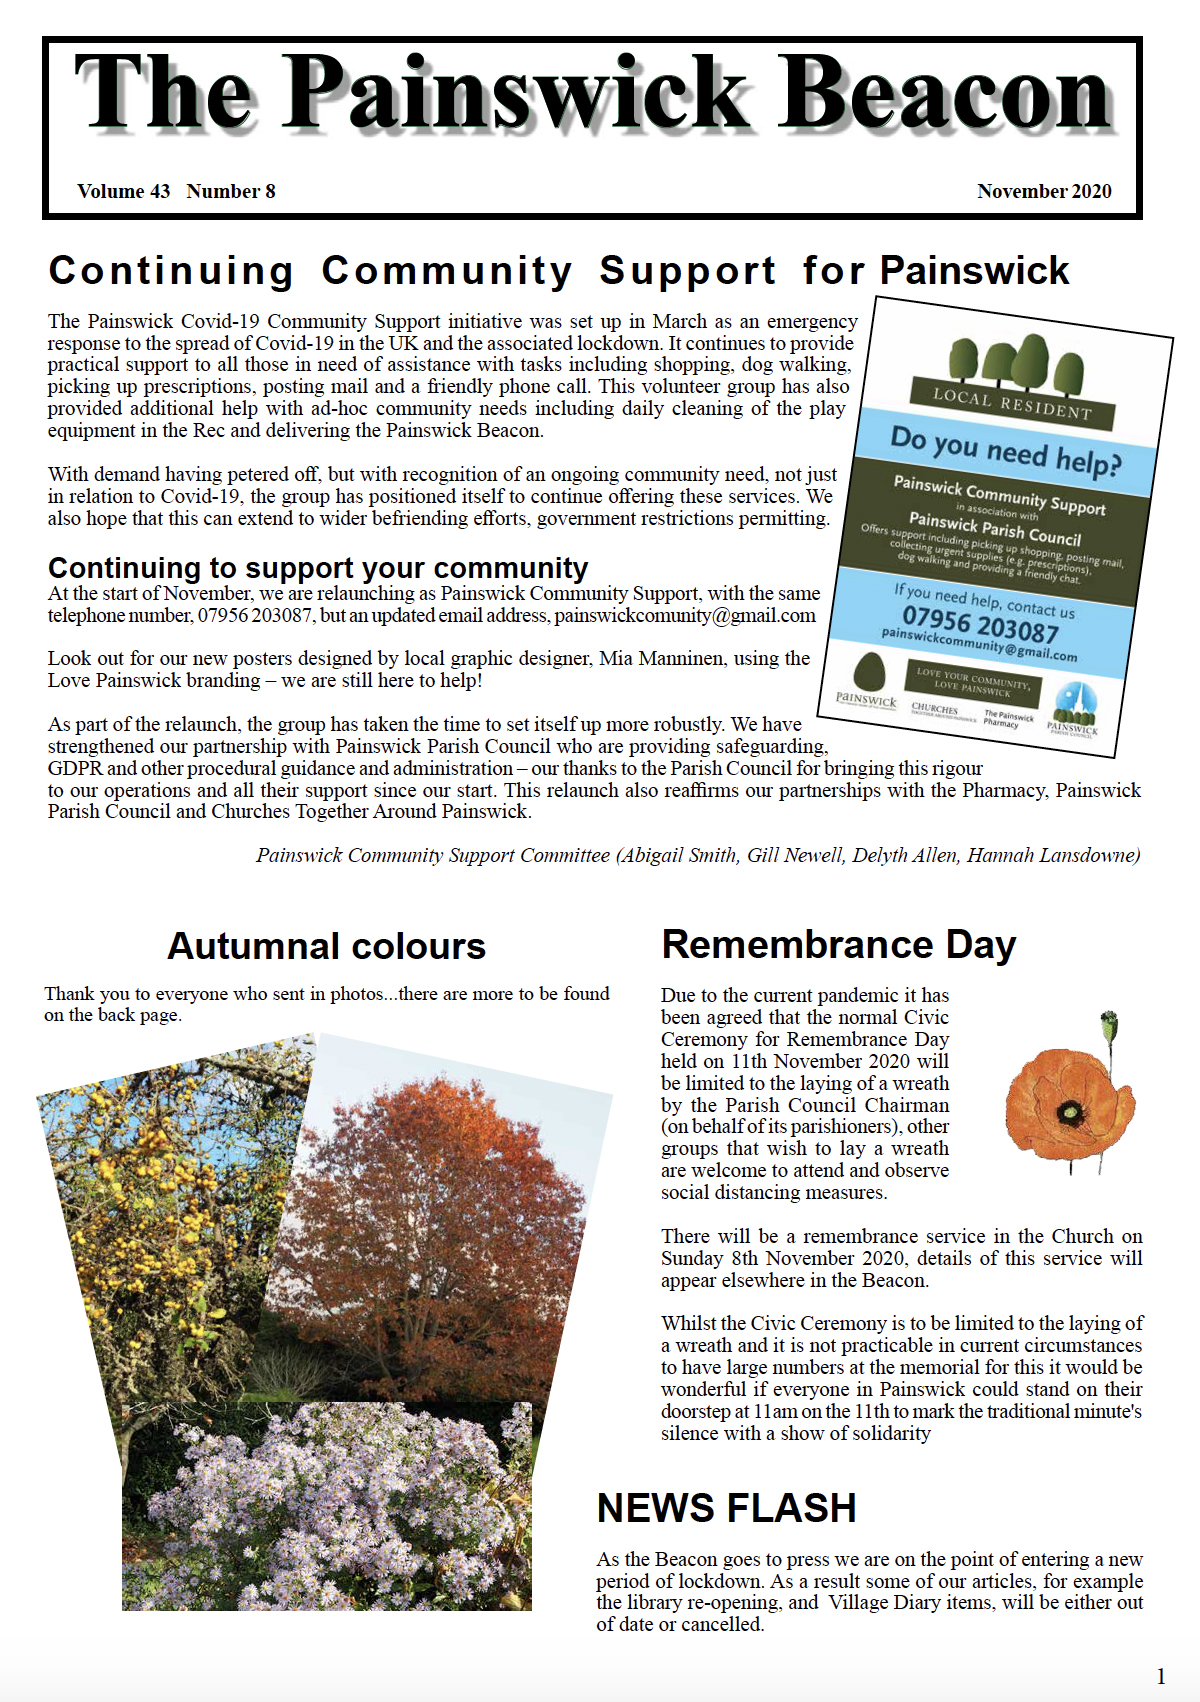 Painswick Beacon November 2020 Edition